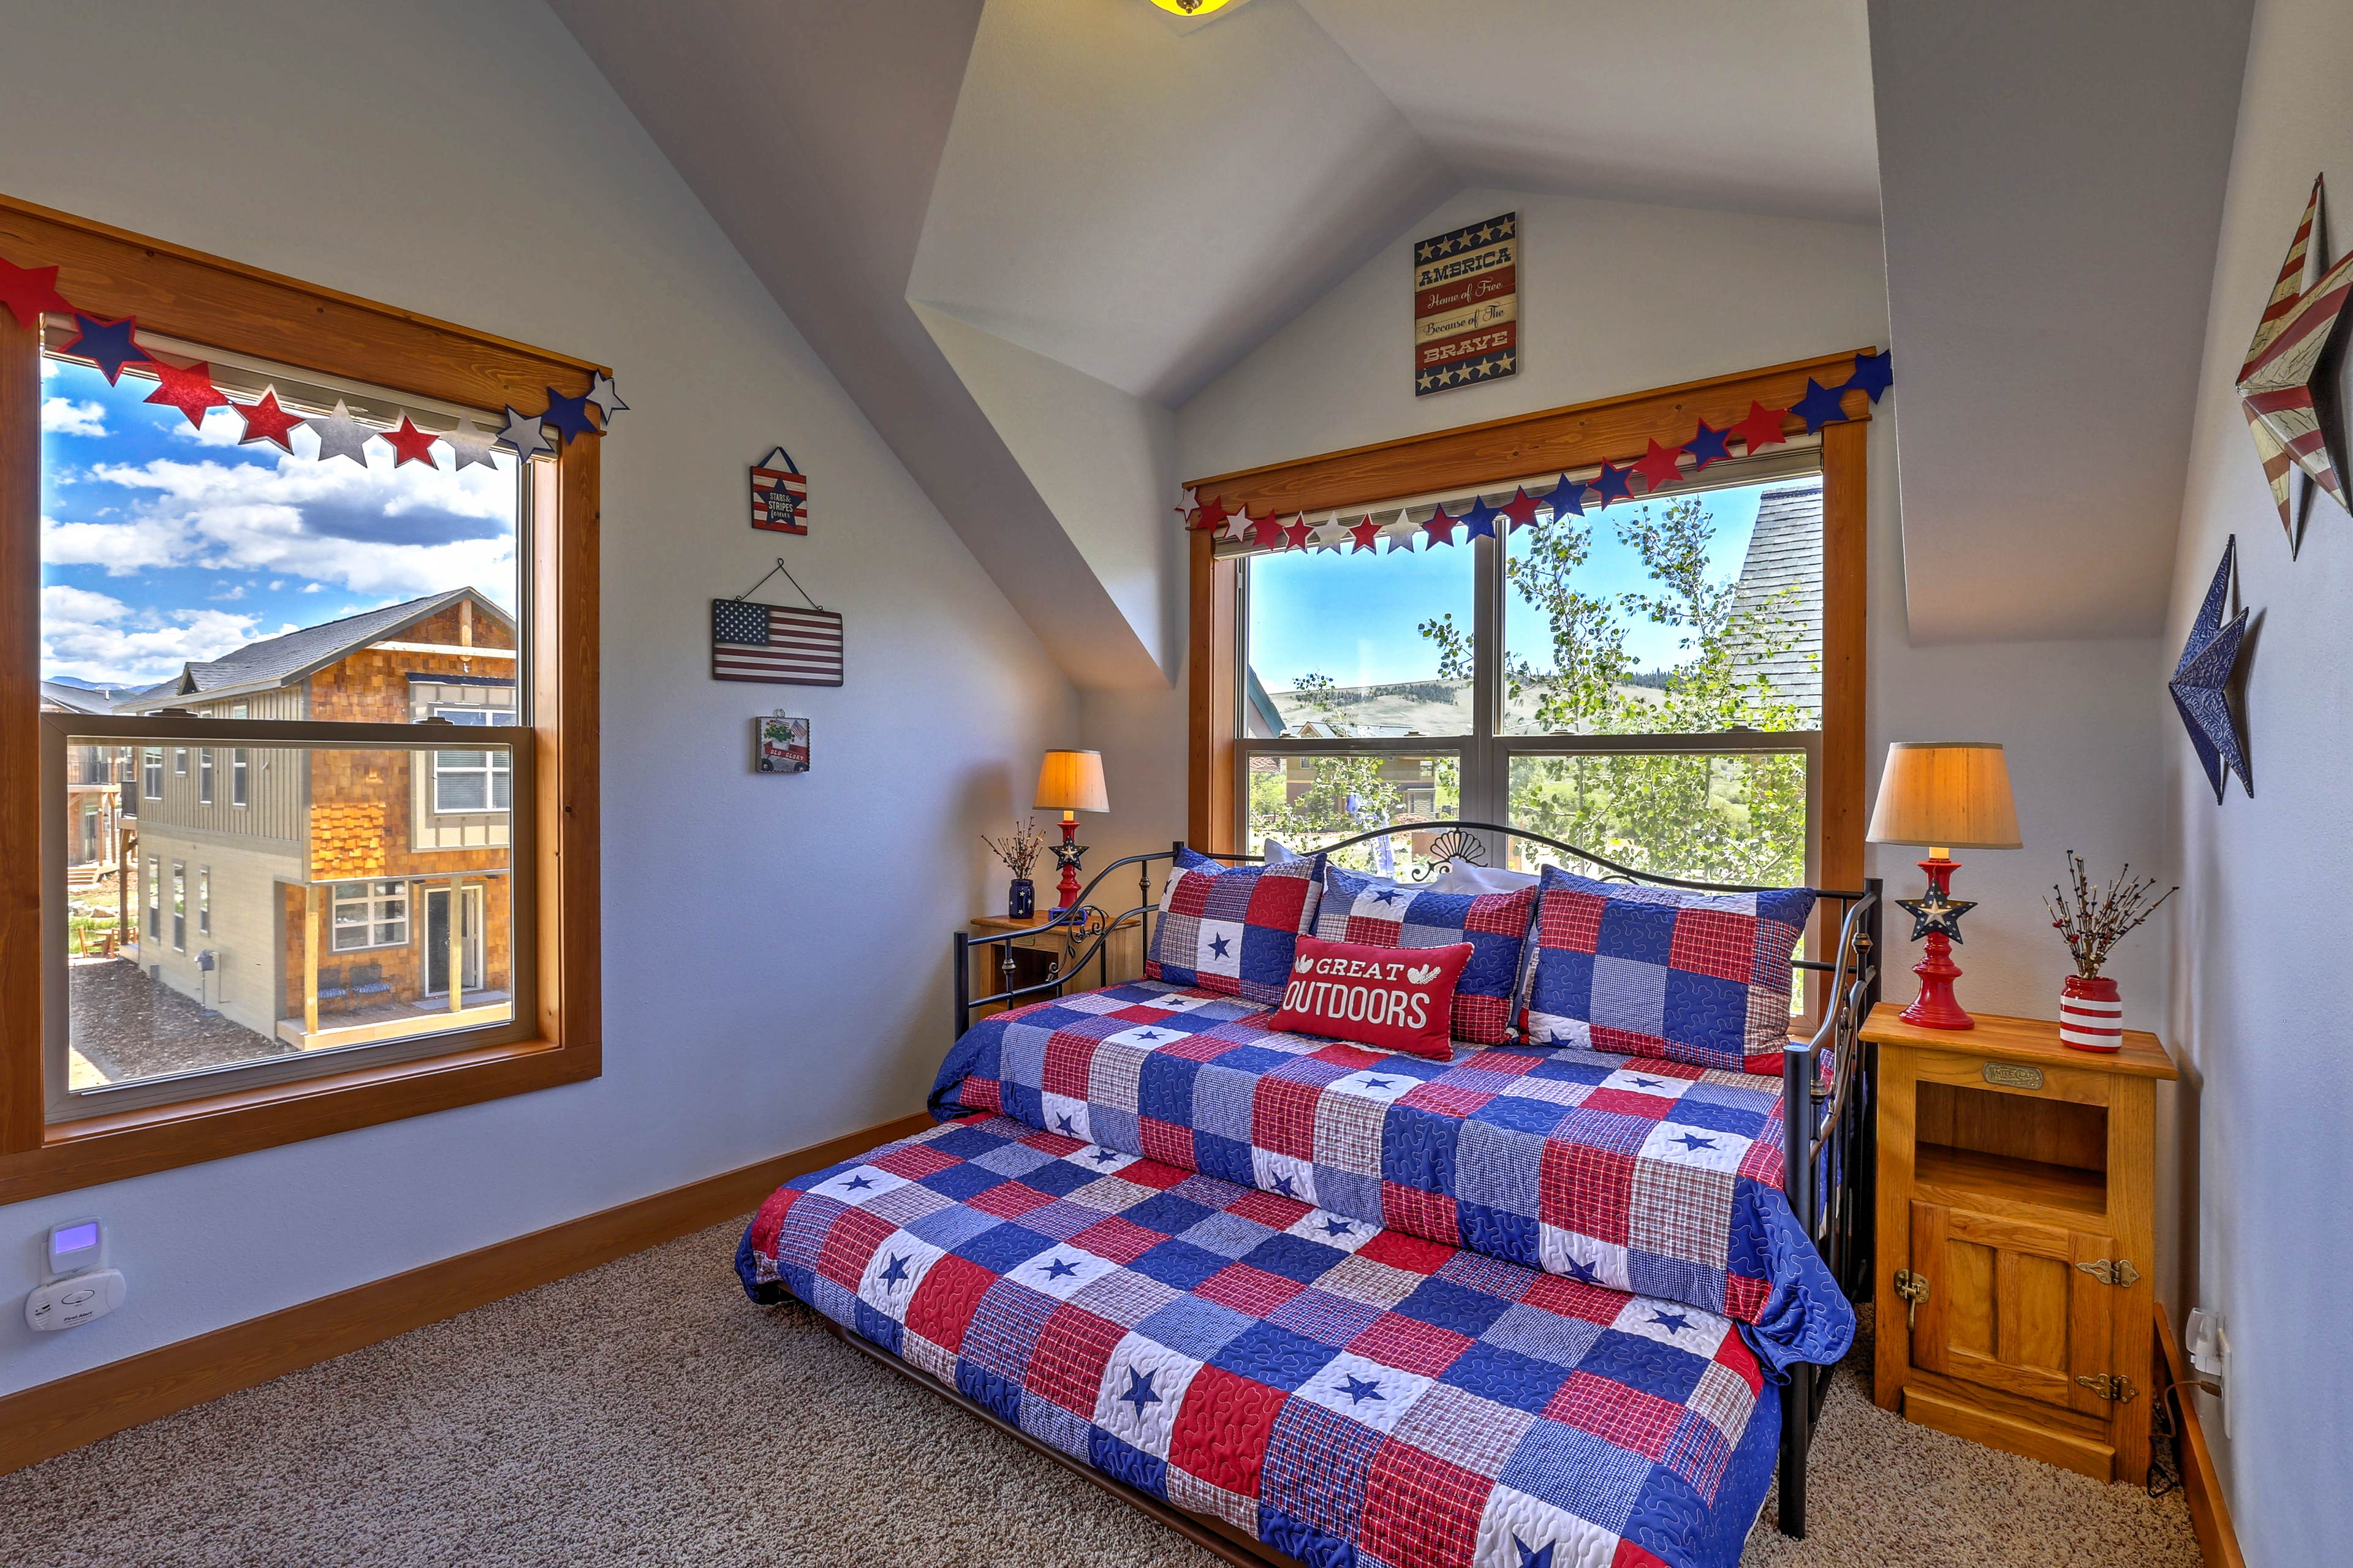 The third bedroom is furnished with a twin bed and a twin trundle bed.